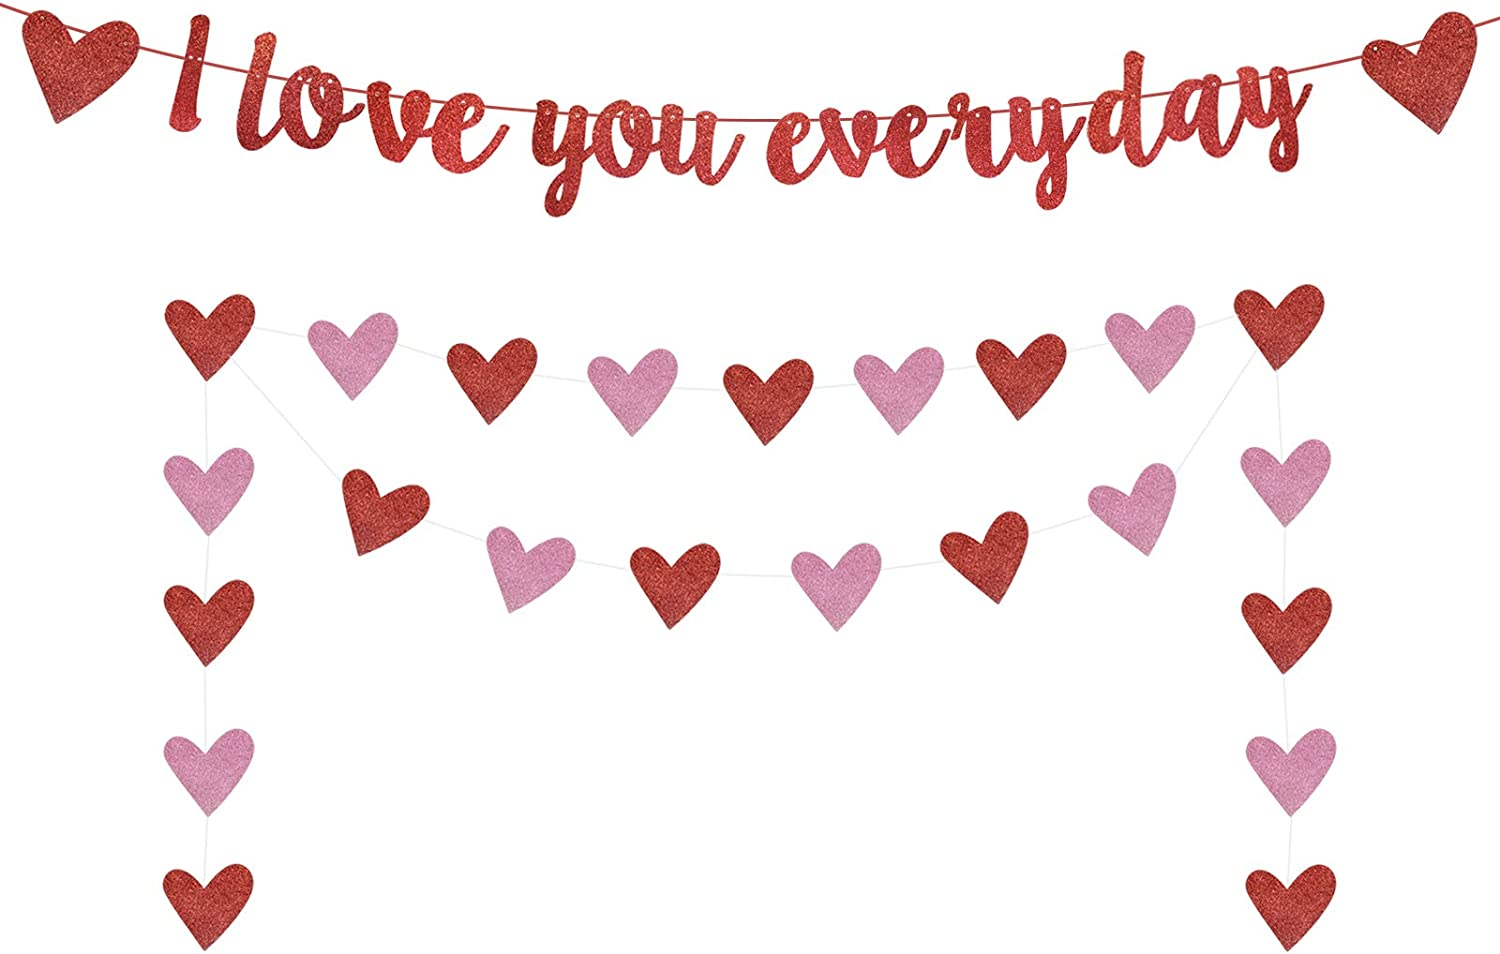 Engagement Valentines Day Fireplace Decor I Love You Everyday Banner Red Glittery Valentines Day Banner for Valentines Day Party Decorations Wedding Anniversary Party Decorations Photo Props